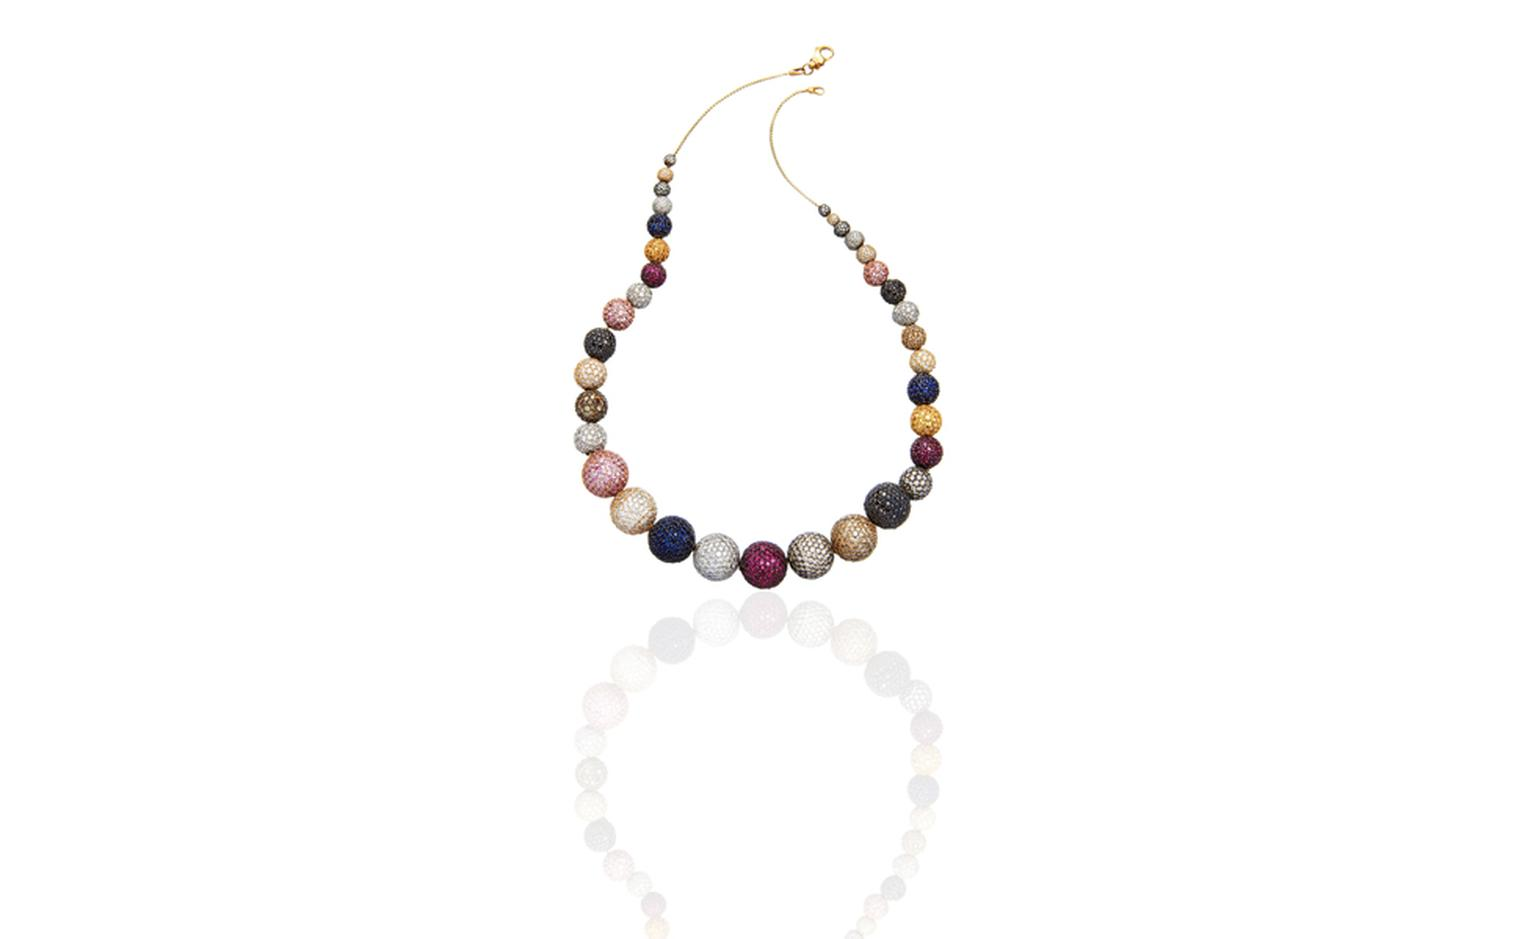 Astley Clarke Takara Naiya Multi Ball necklace in white and yellow gold with diamonds and sapphires, £60,000